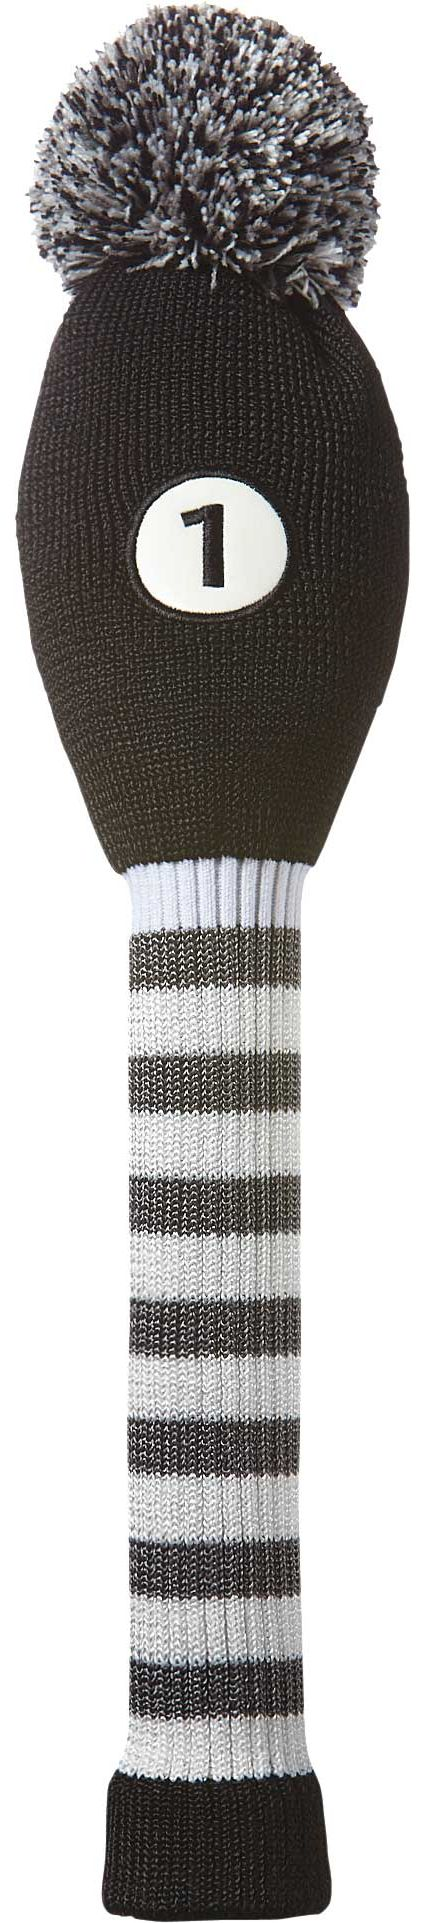 Maxfli Vintage Knit Driver Headcover